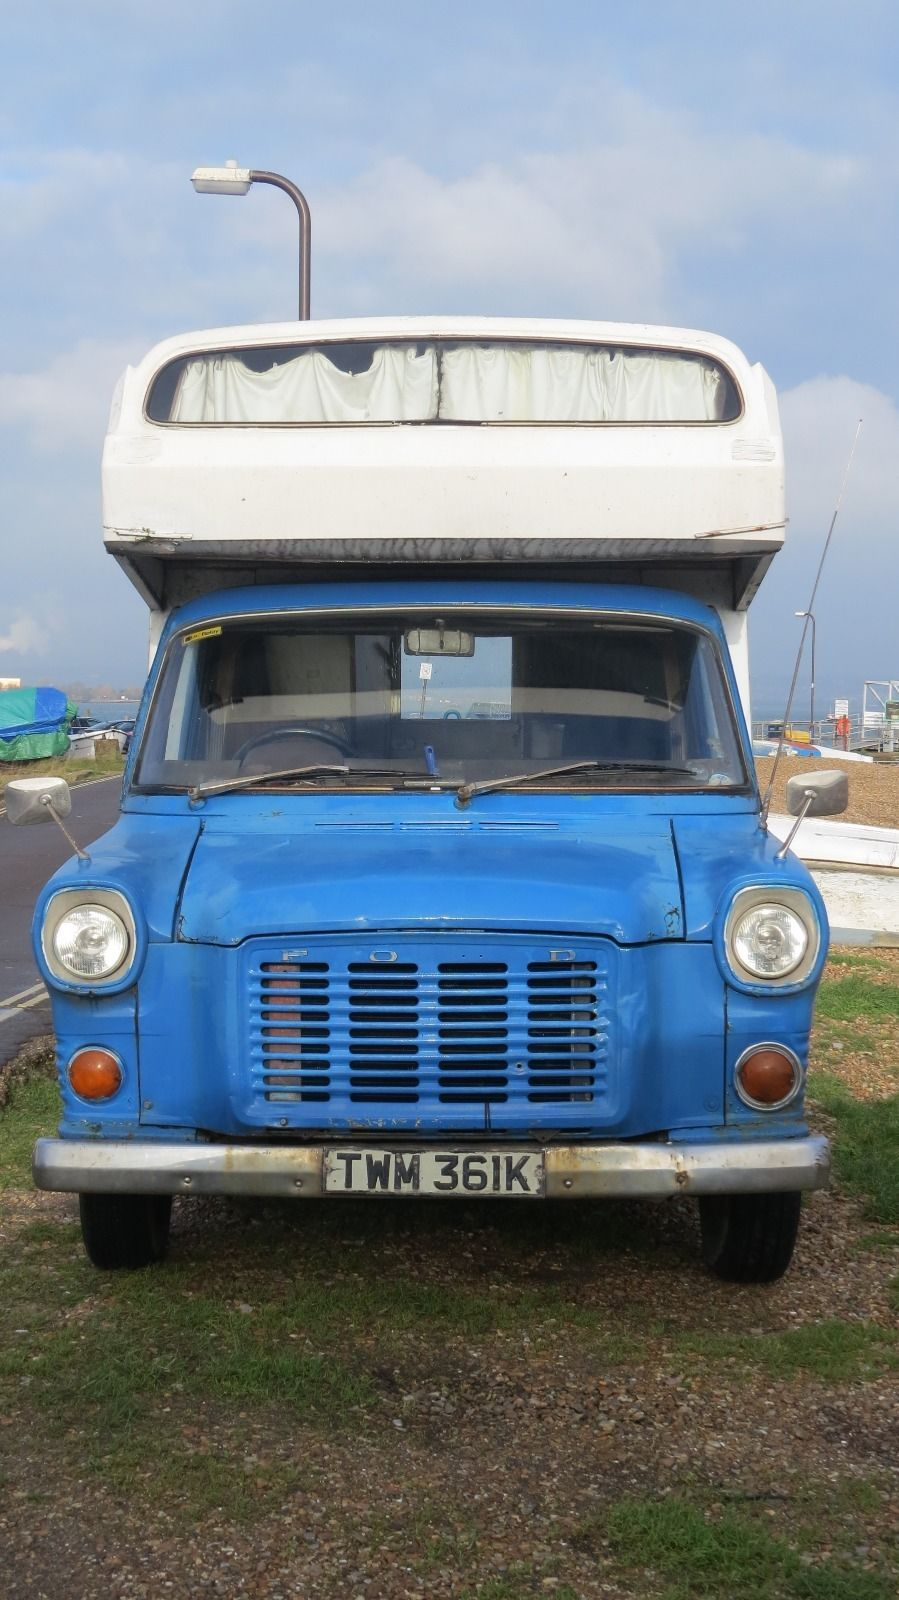 Ford transit camper van historic vehicle tax exempt in cars motorcycles vehicles campers caravans motorhomes campervans motorhomes